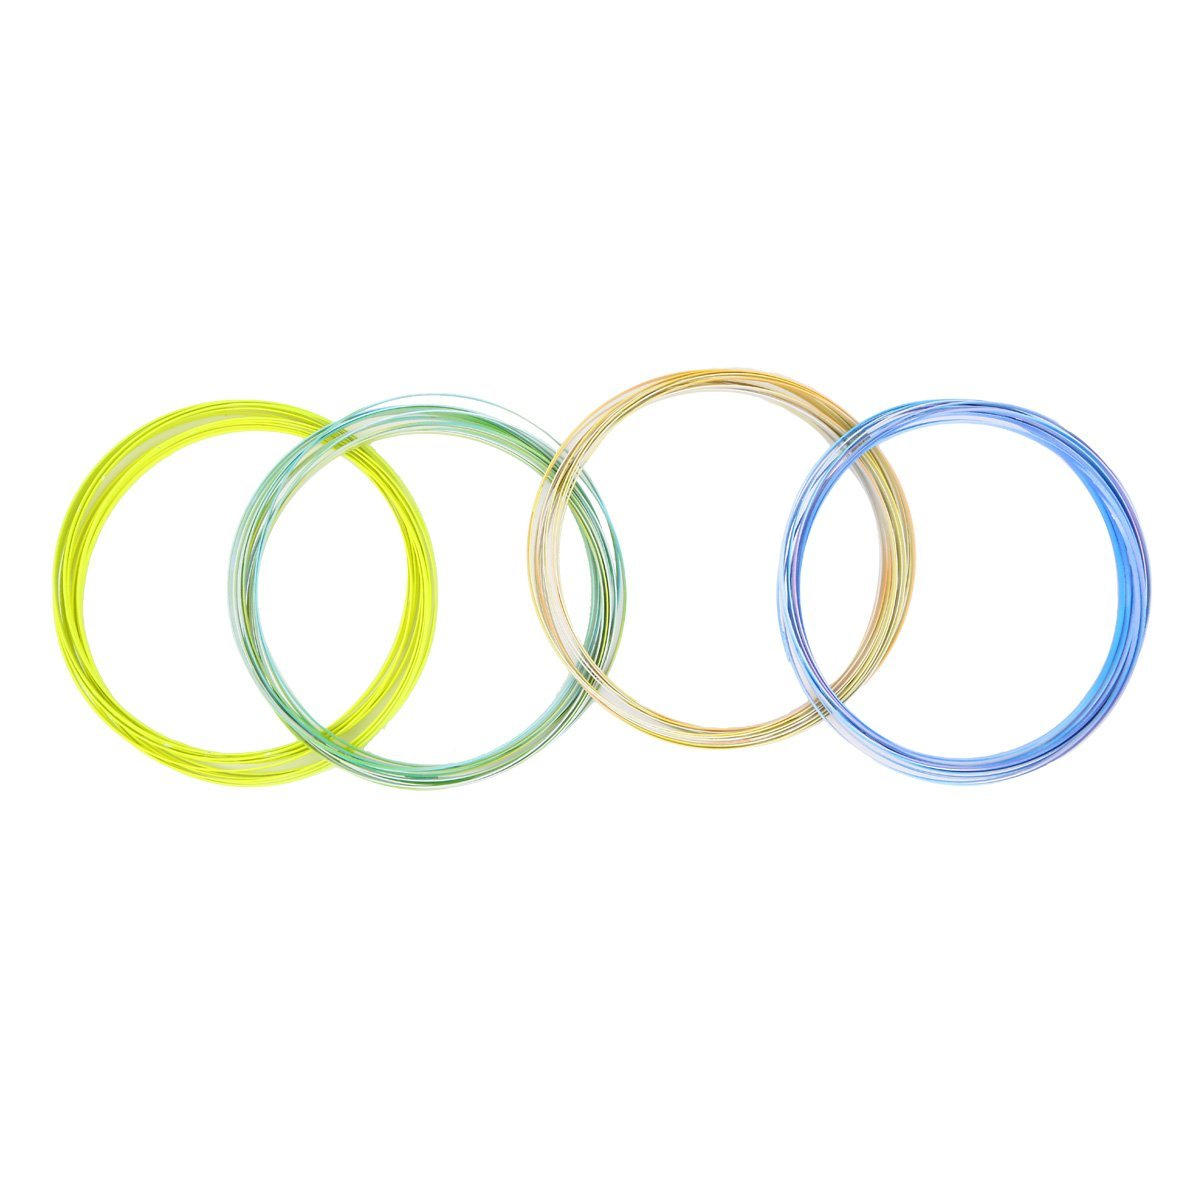 Winterworm 4 Pcs 3D Multi Color Flow Rings Stainless Steel Magic Kinetic Spring Toy Science Educational Sensory Interactive Toys